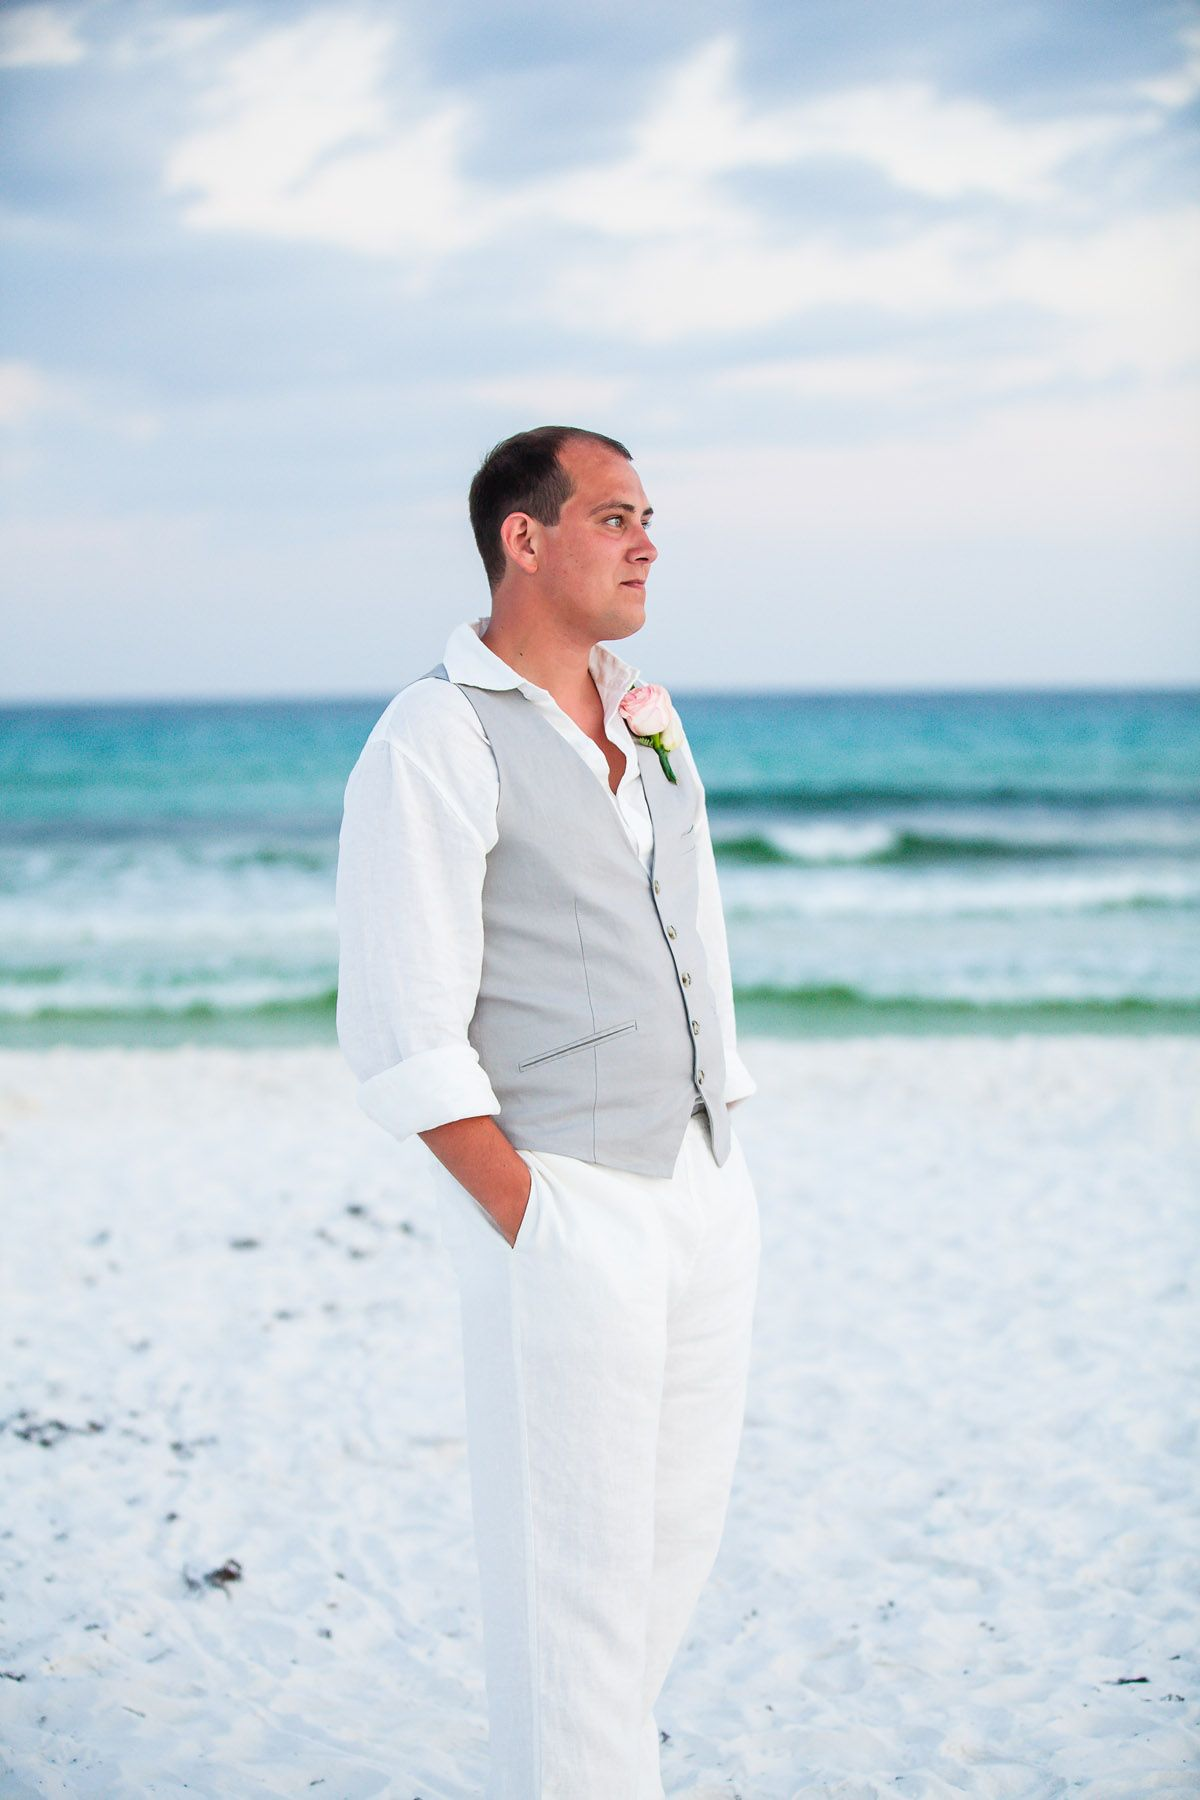 Pin By Off The Wall Paintings On Beach Wedding Destin Fl Beach Wedding Groom Beach Wedding Groom Attire Beach Wedding Attire